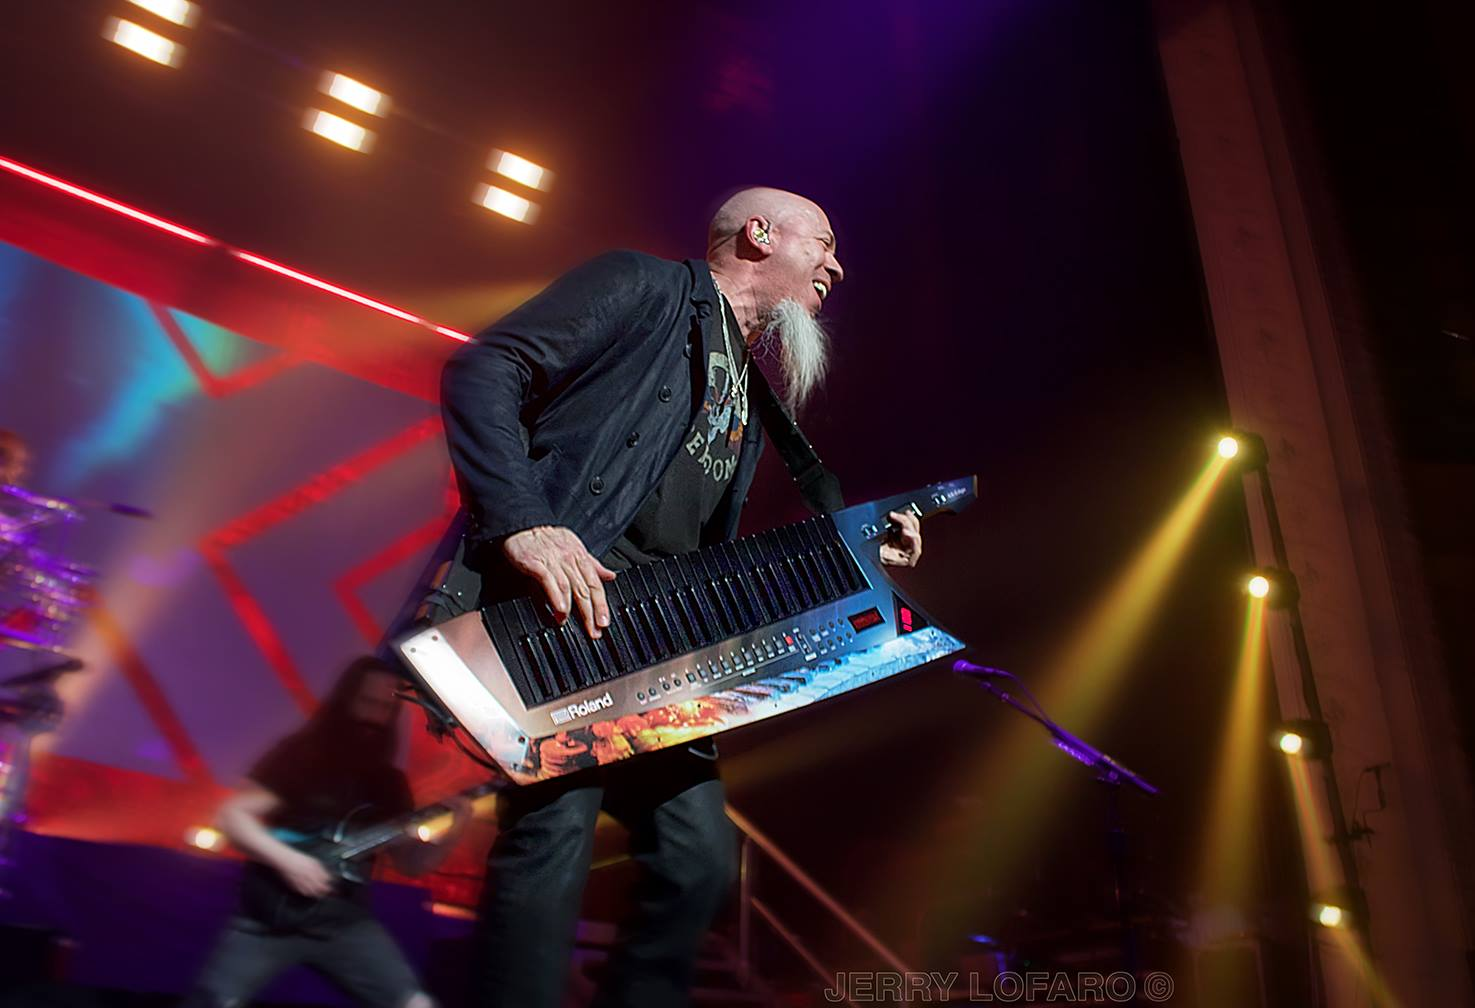 Cablare asumată (Wired for Madness – Jordan Rudess)